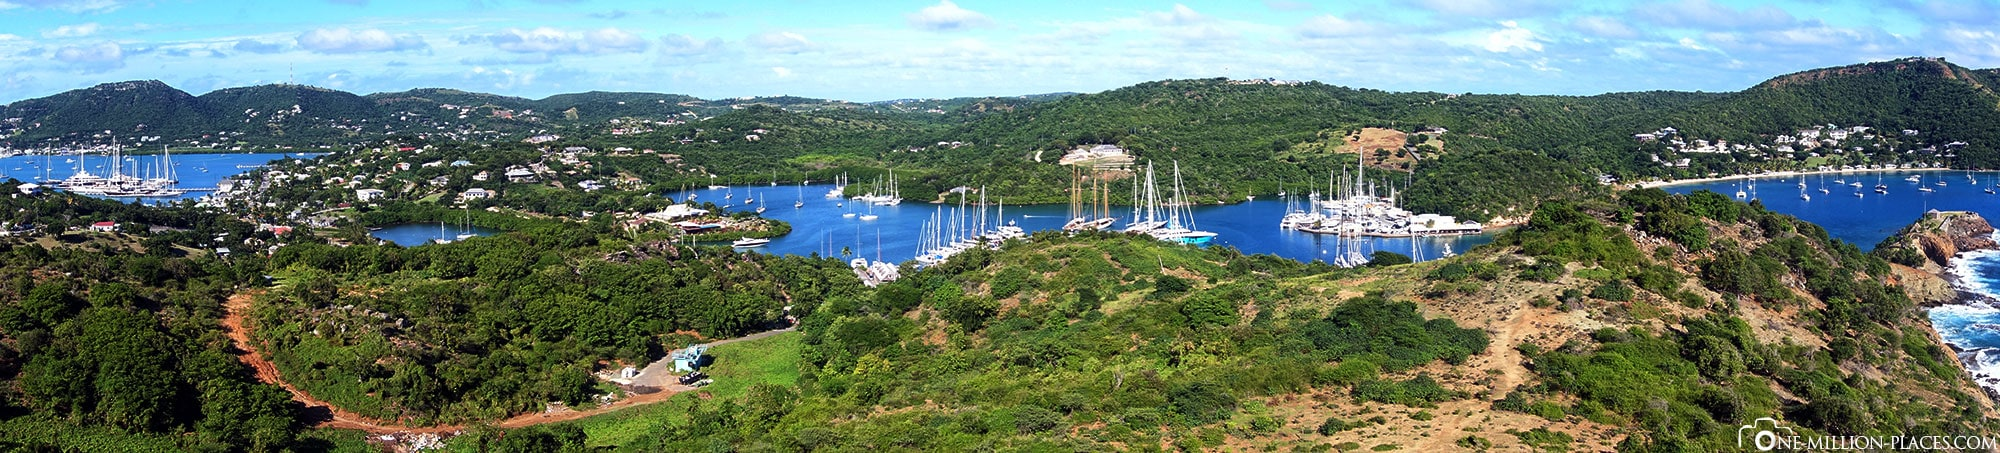 Panoramic view, Middle Ground Trail , Antigua, St. John's, Caribbean, World Heritage, Attractions, On Your Own, Travelreport